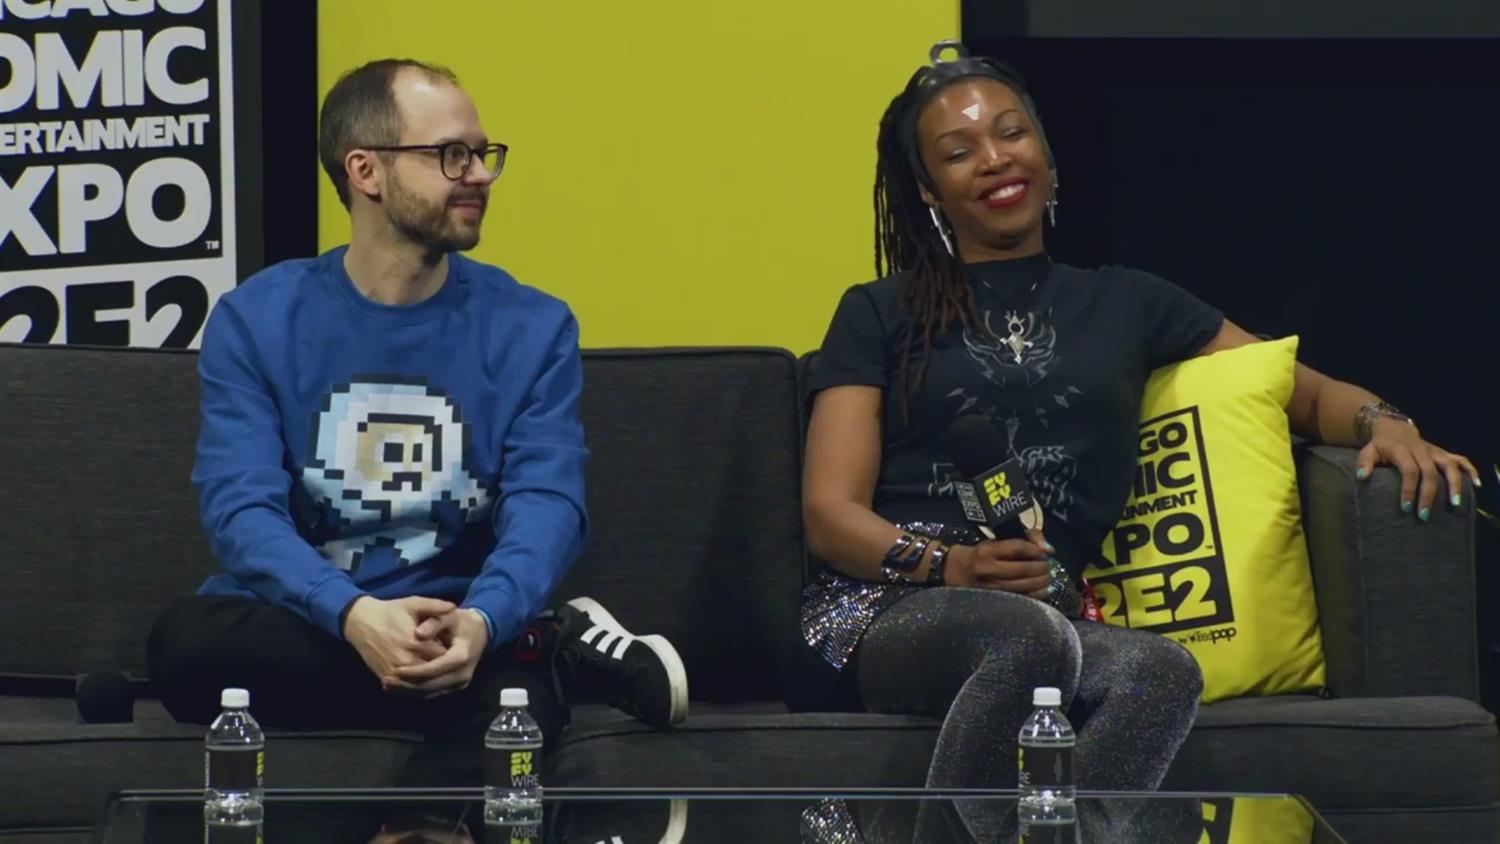 Black Panther Roundtable on Creating a Diverse Cast of Characters (C2E2 2019)